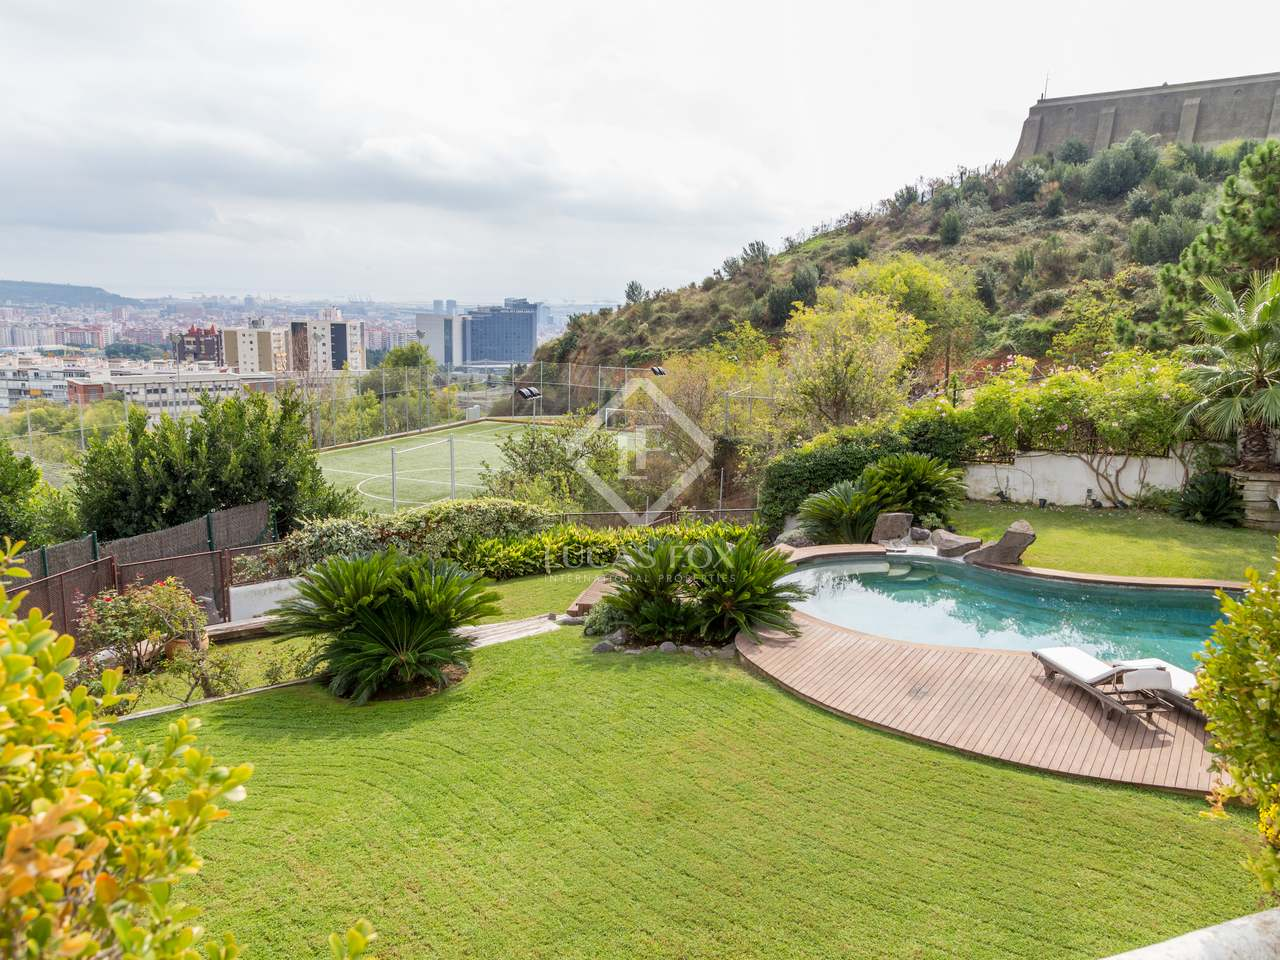 Charming house for rent in pedralbes barcelona 39 s zona alta for Barcelona pool garden 4